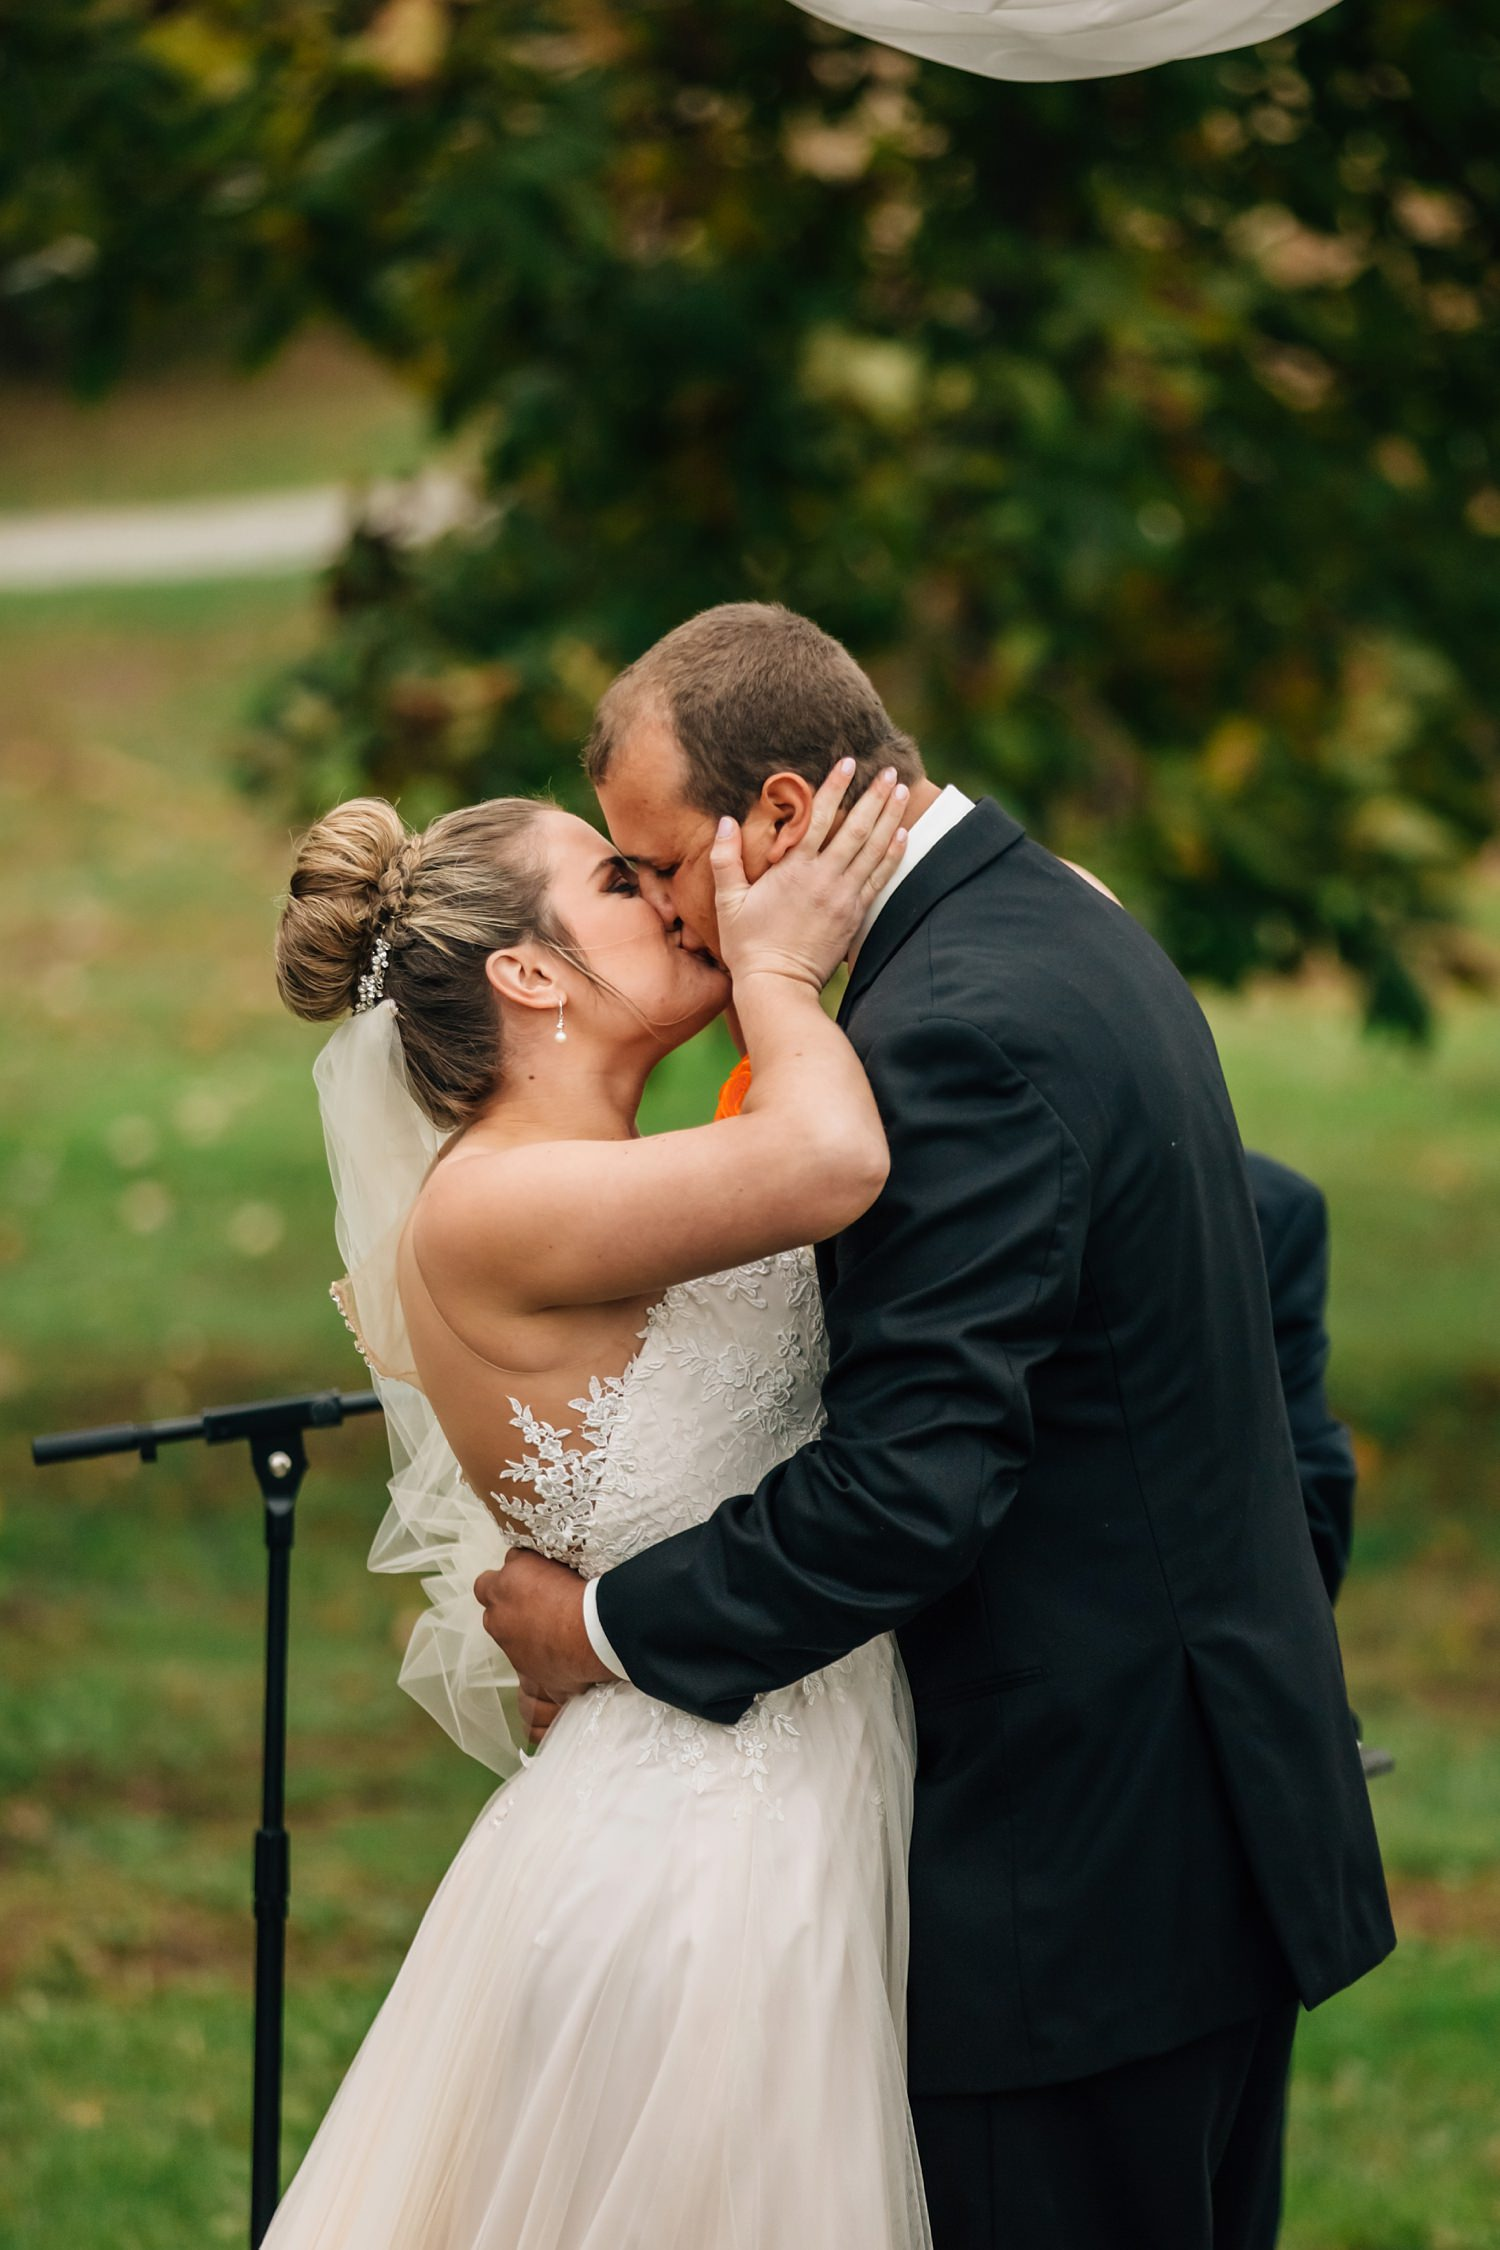 first kiss during small wedding ceremony in johnstown ohio